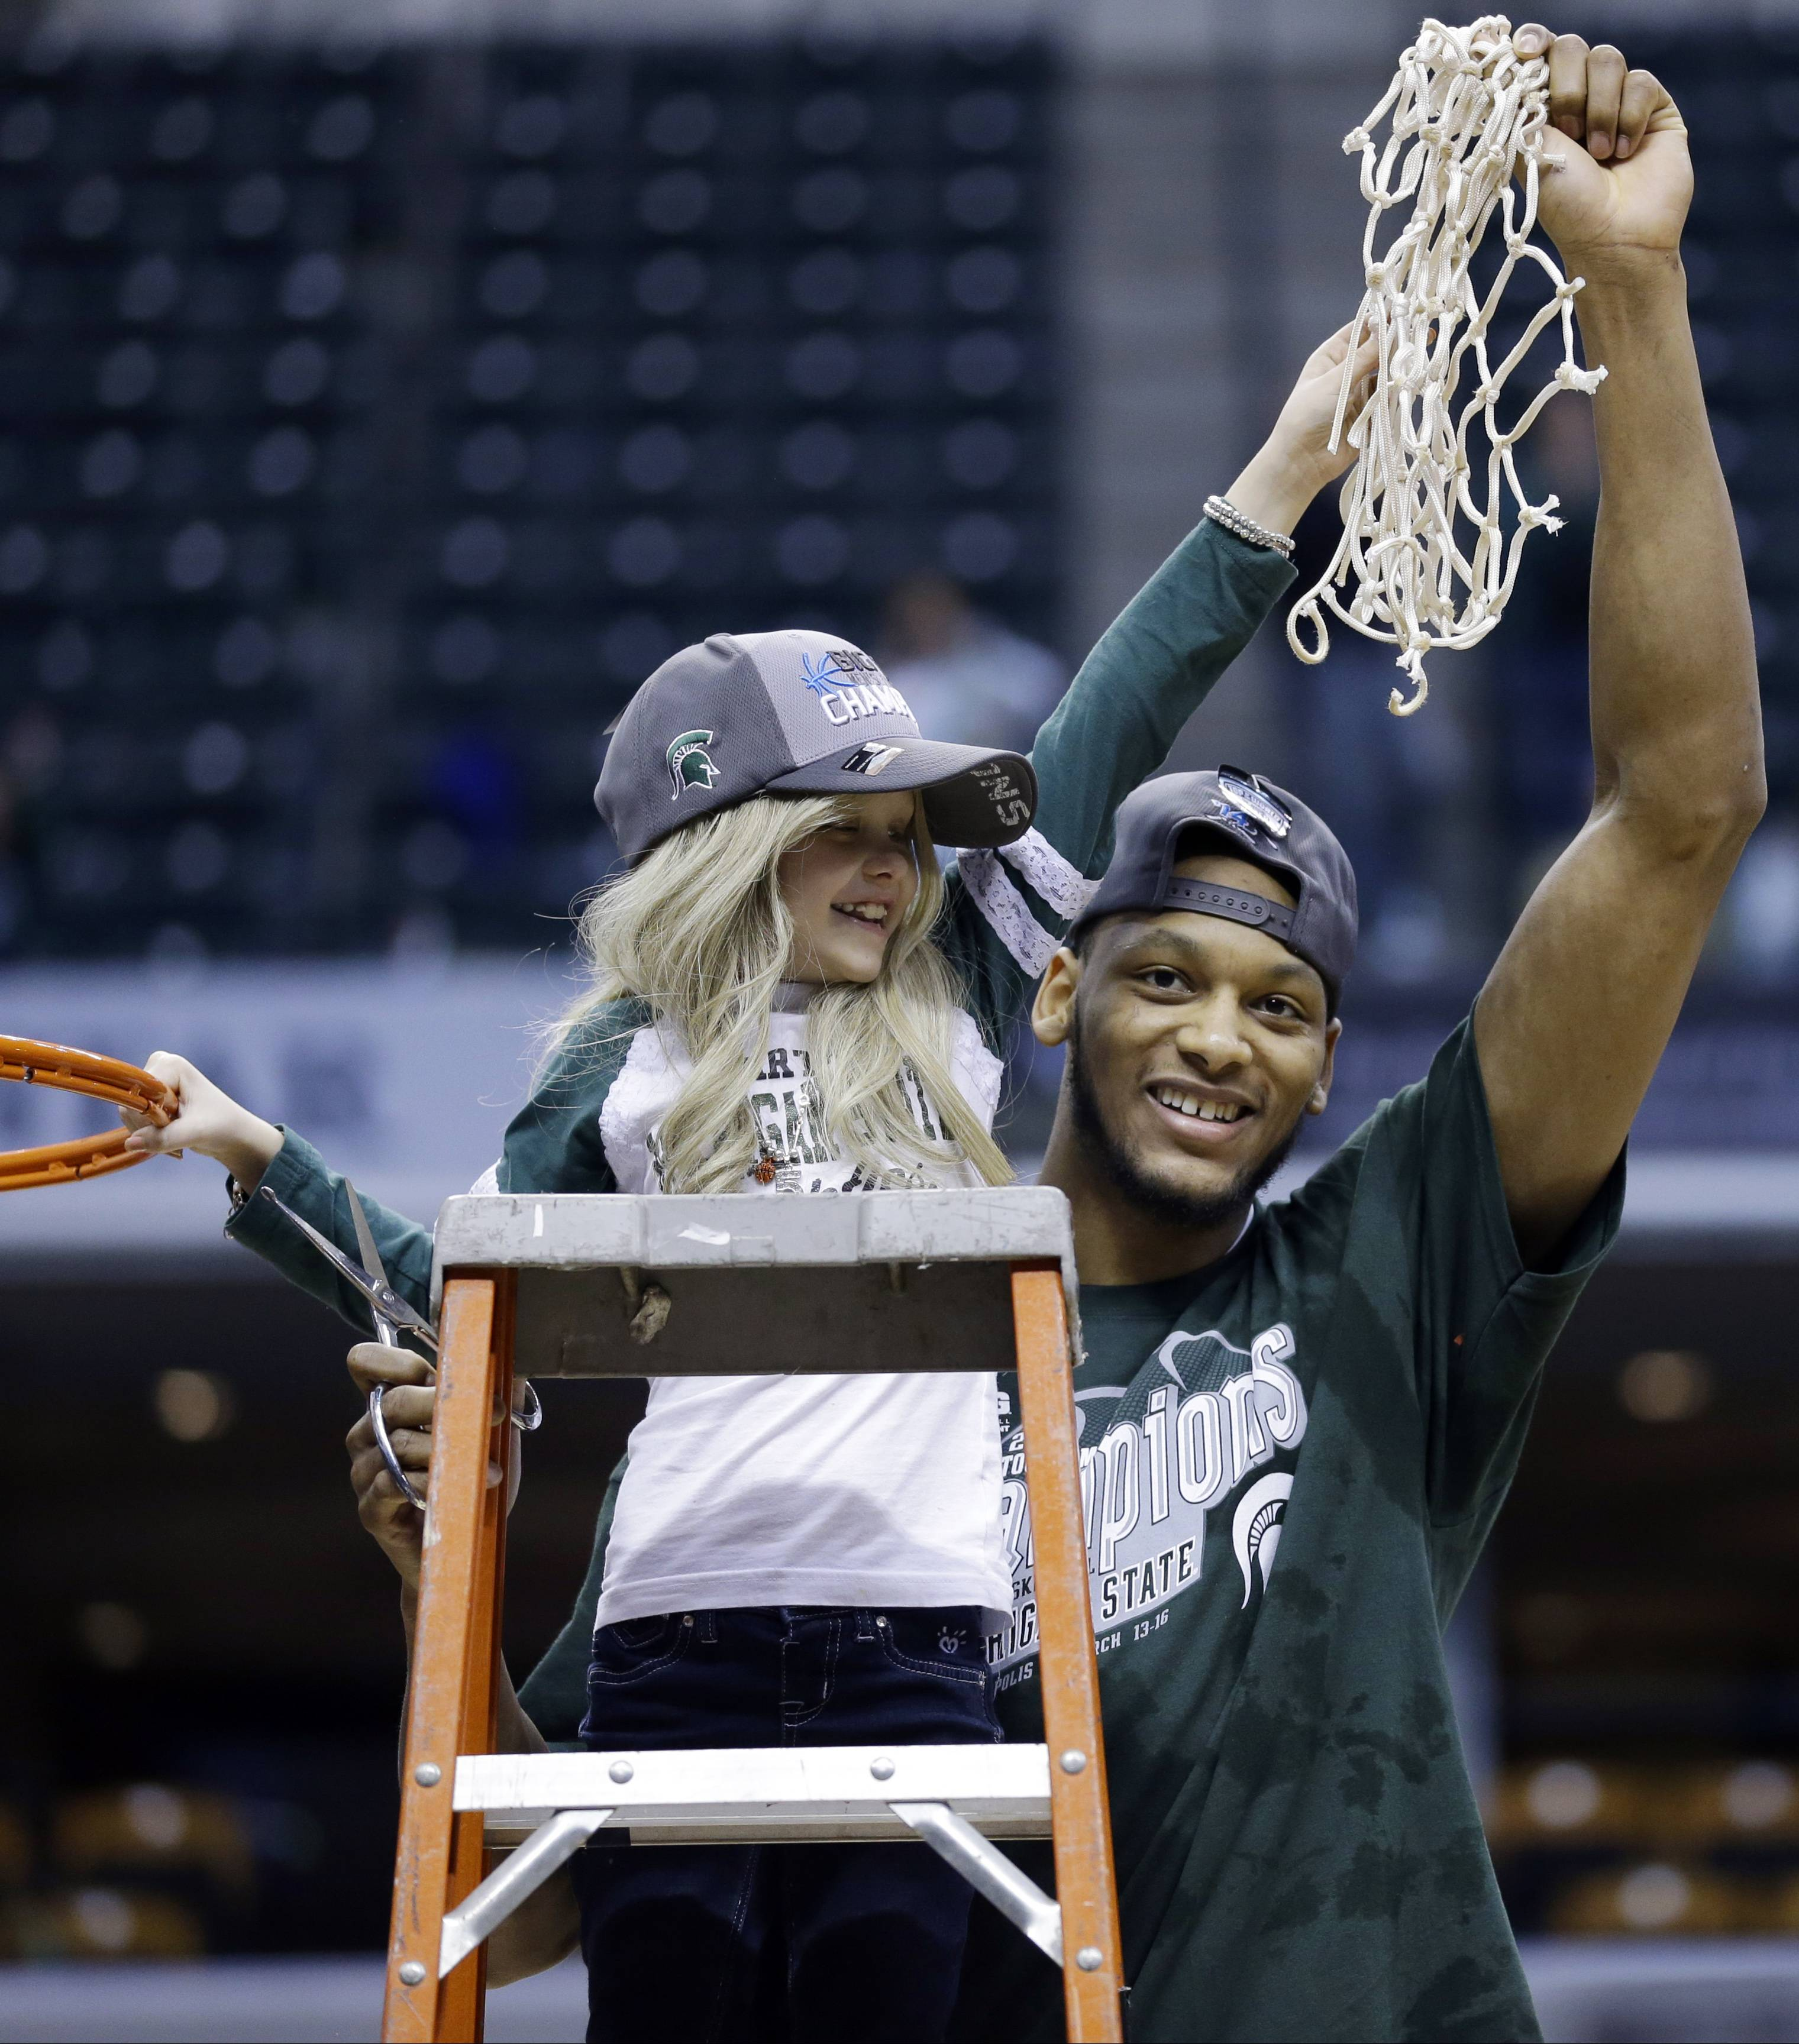 "Michigan State forward Adreian Payne, right, hoists the net with Lacey Holsworth, who was battling cancer, after Michigan State defeated Michigan 69-55 in an NCAA college basketball game in the championship of the Big Ten Conference tournament in Indianapolis. The 8-year-old girl died at her St. Johns, Mich., home late Tuesday ""with her mommy and daddy holding her in their arms."""